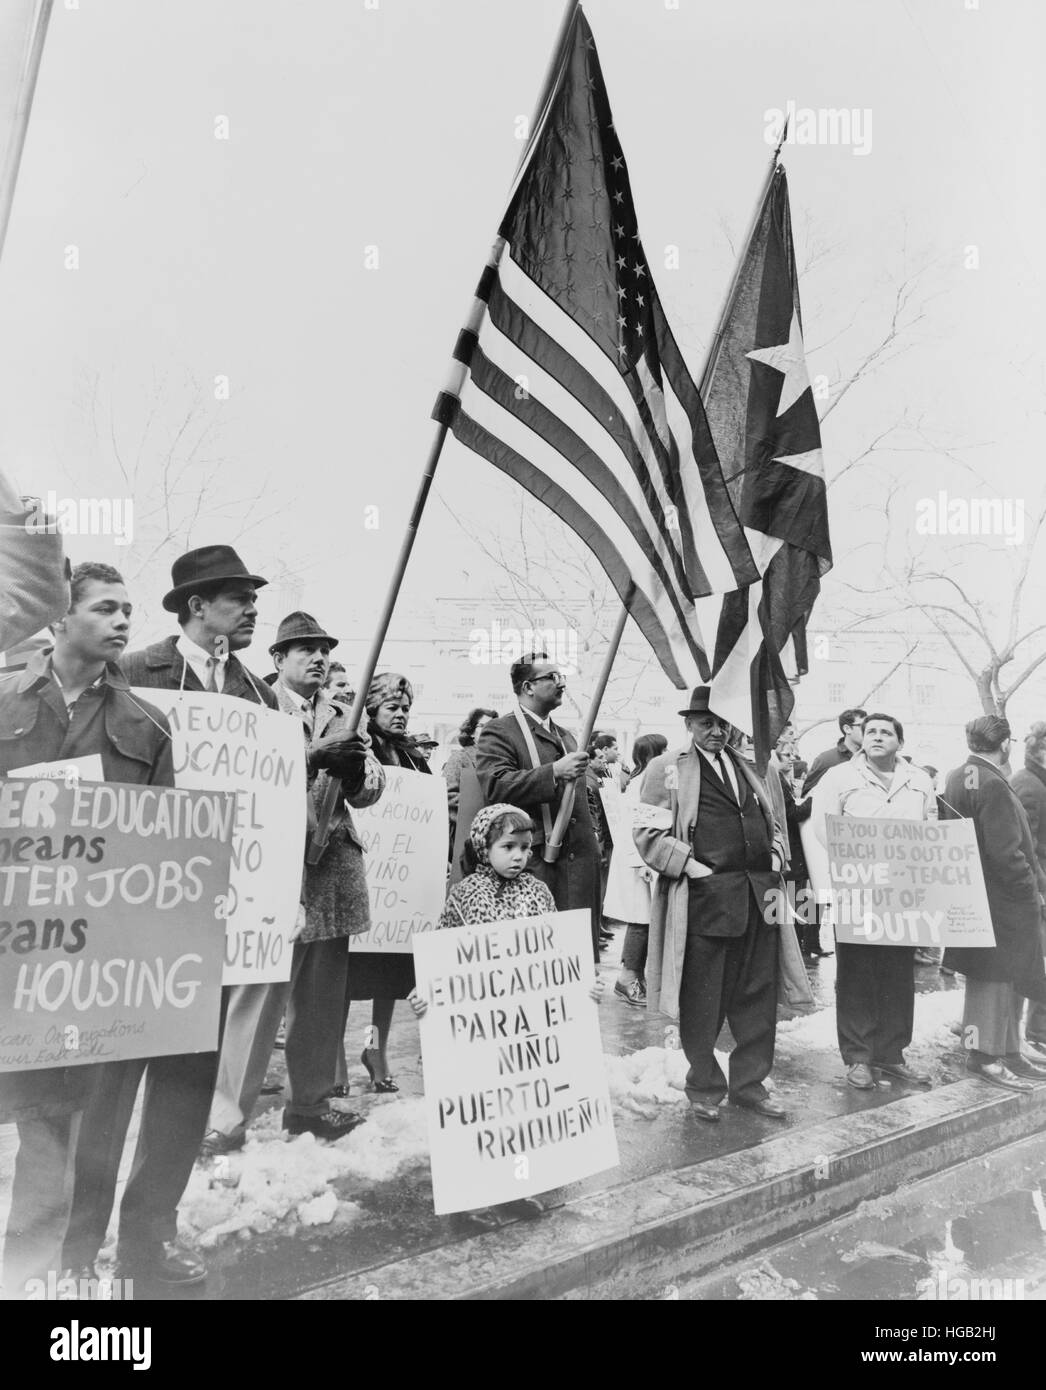 Puerto Ricans demonstrate for civil rights, New York City, 1967. - Stock Image